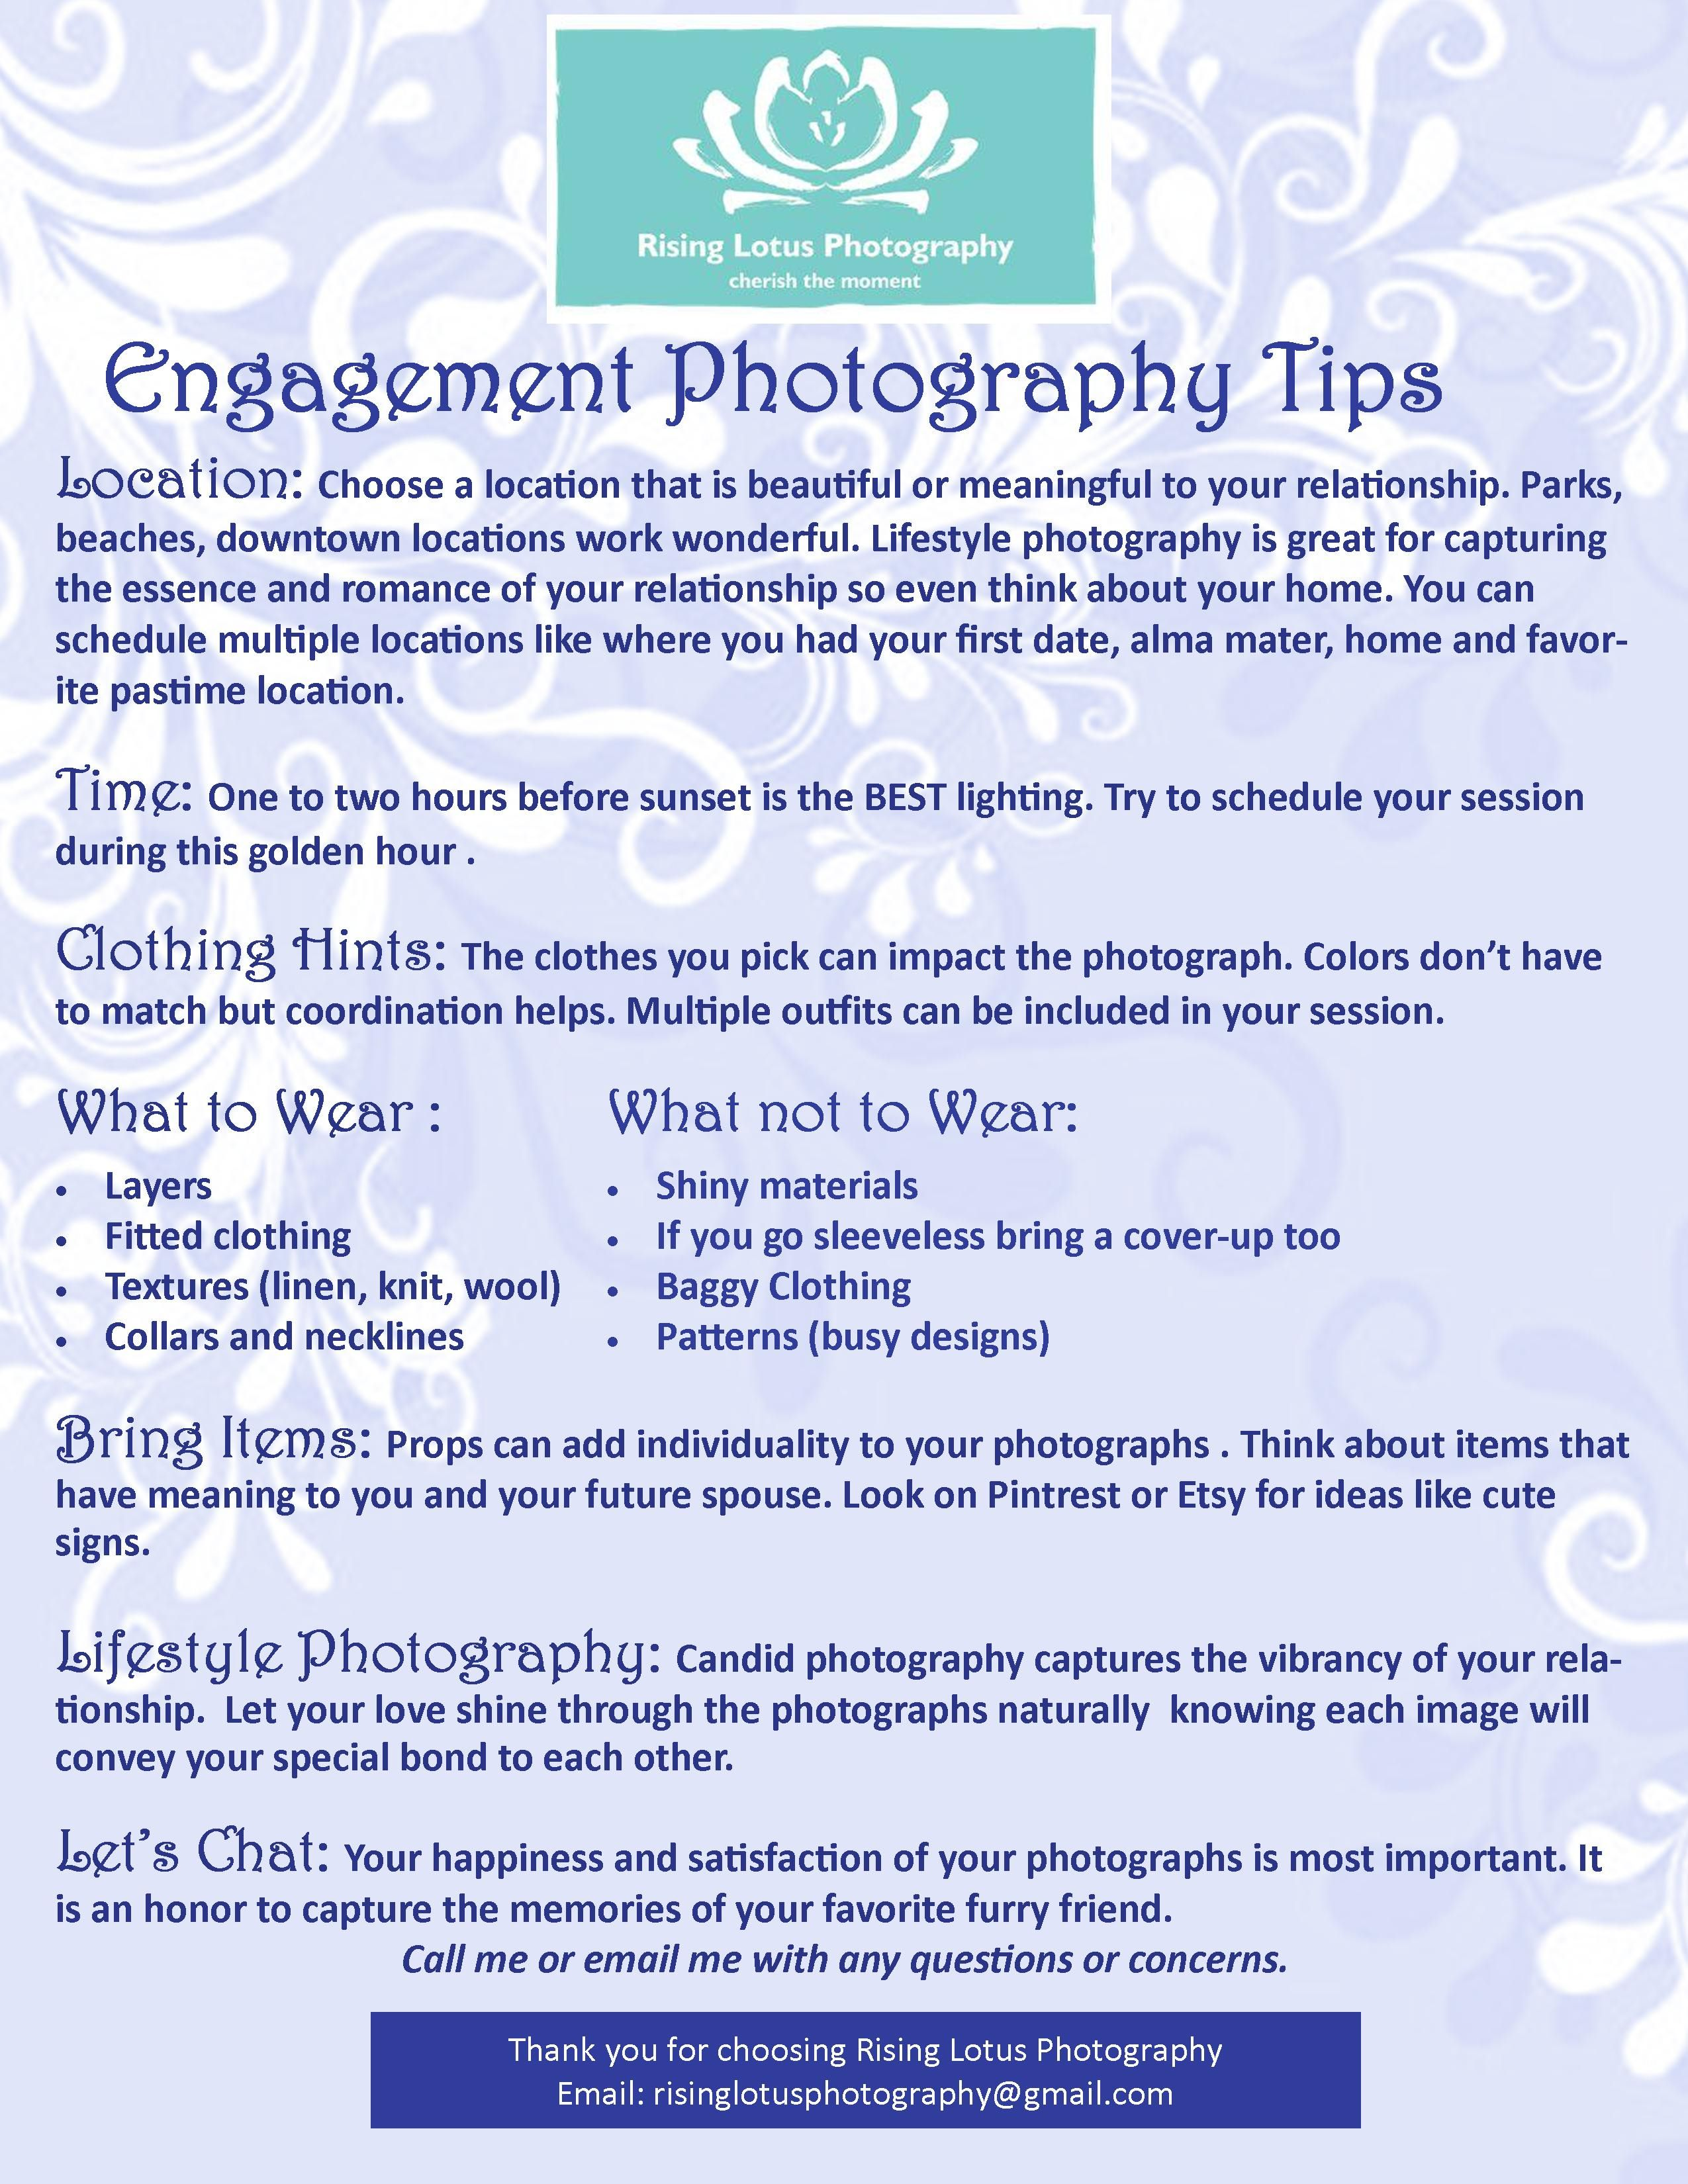 Engagement Photography tips.  Risinglotusphotography.com